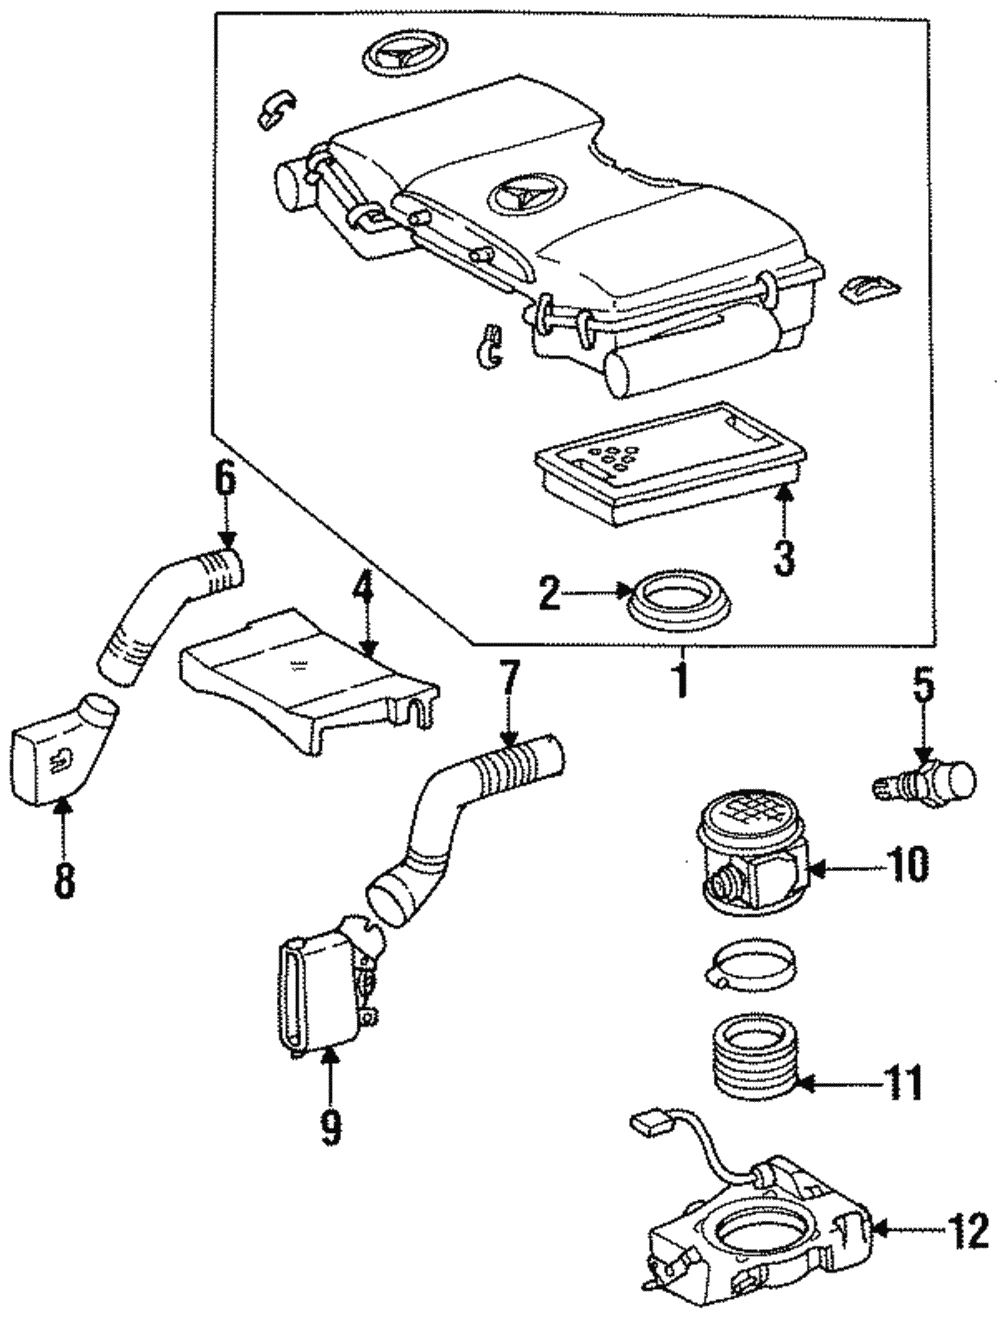 hight resolution of part can be found as 6 in the diagram above